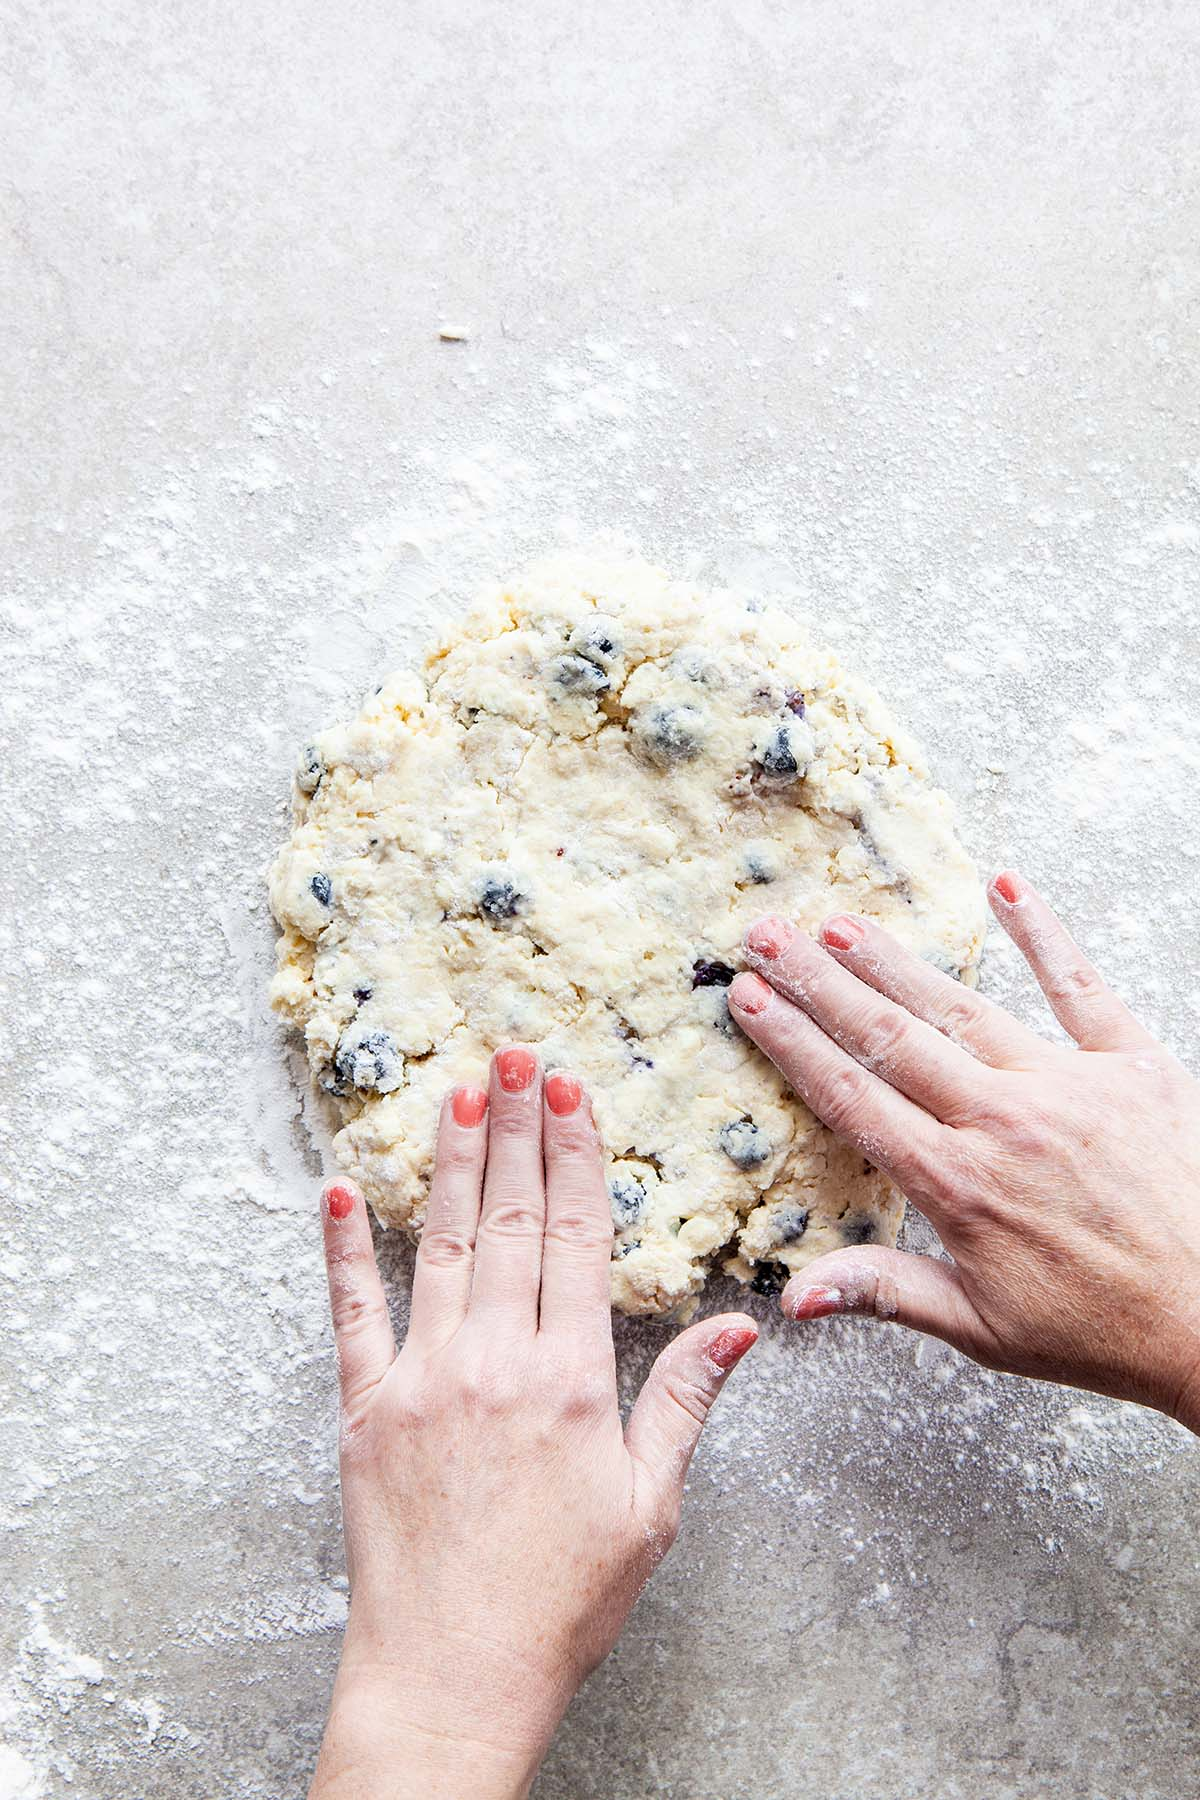 Two hands patting dough into a circle on a floured stone surface.